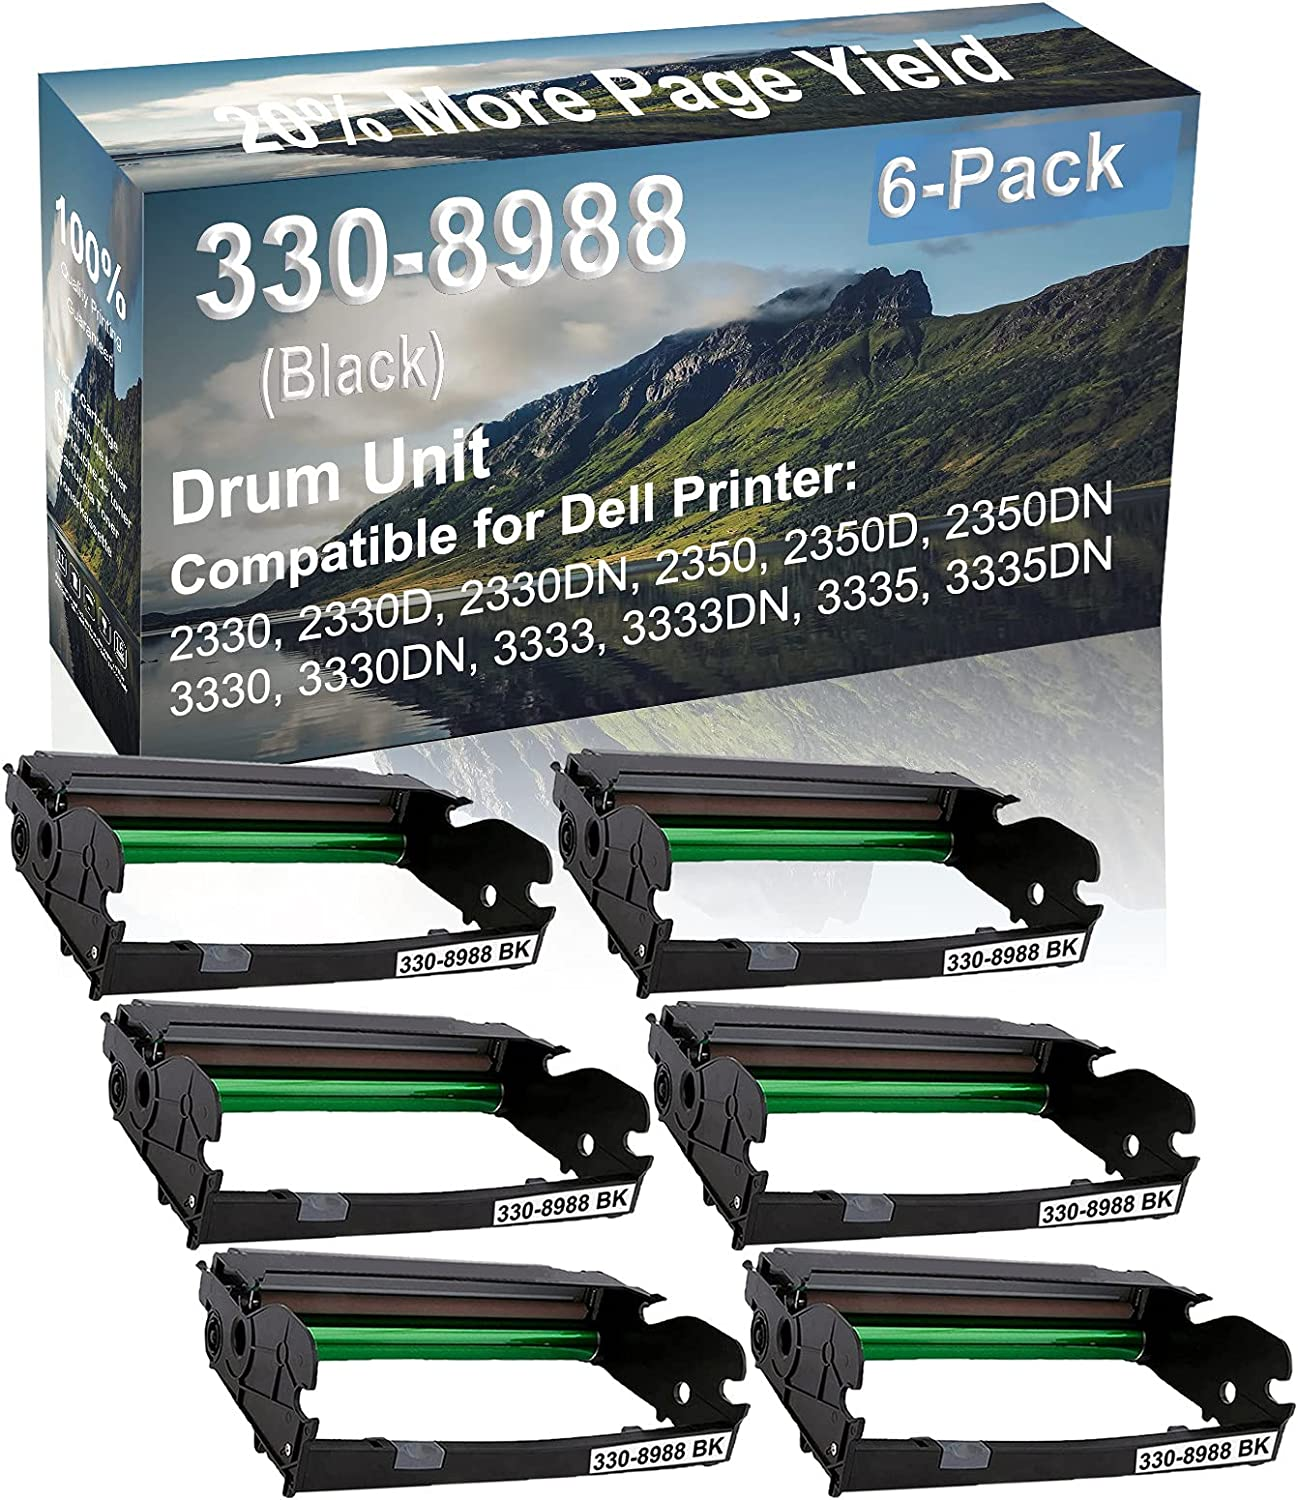 6-Pack Compatible Drum Unit (Black) Replacement for Dell 330-8988 Drum Kit use for Dell 3333, 3333DN, 3335, 3335DN Printer